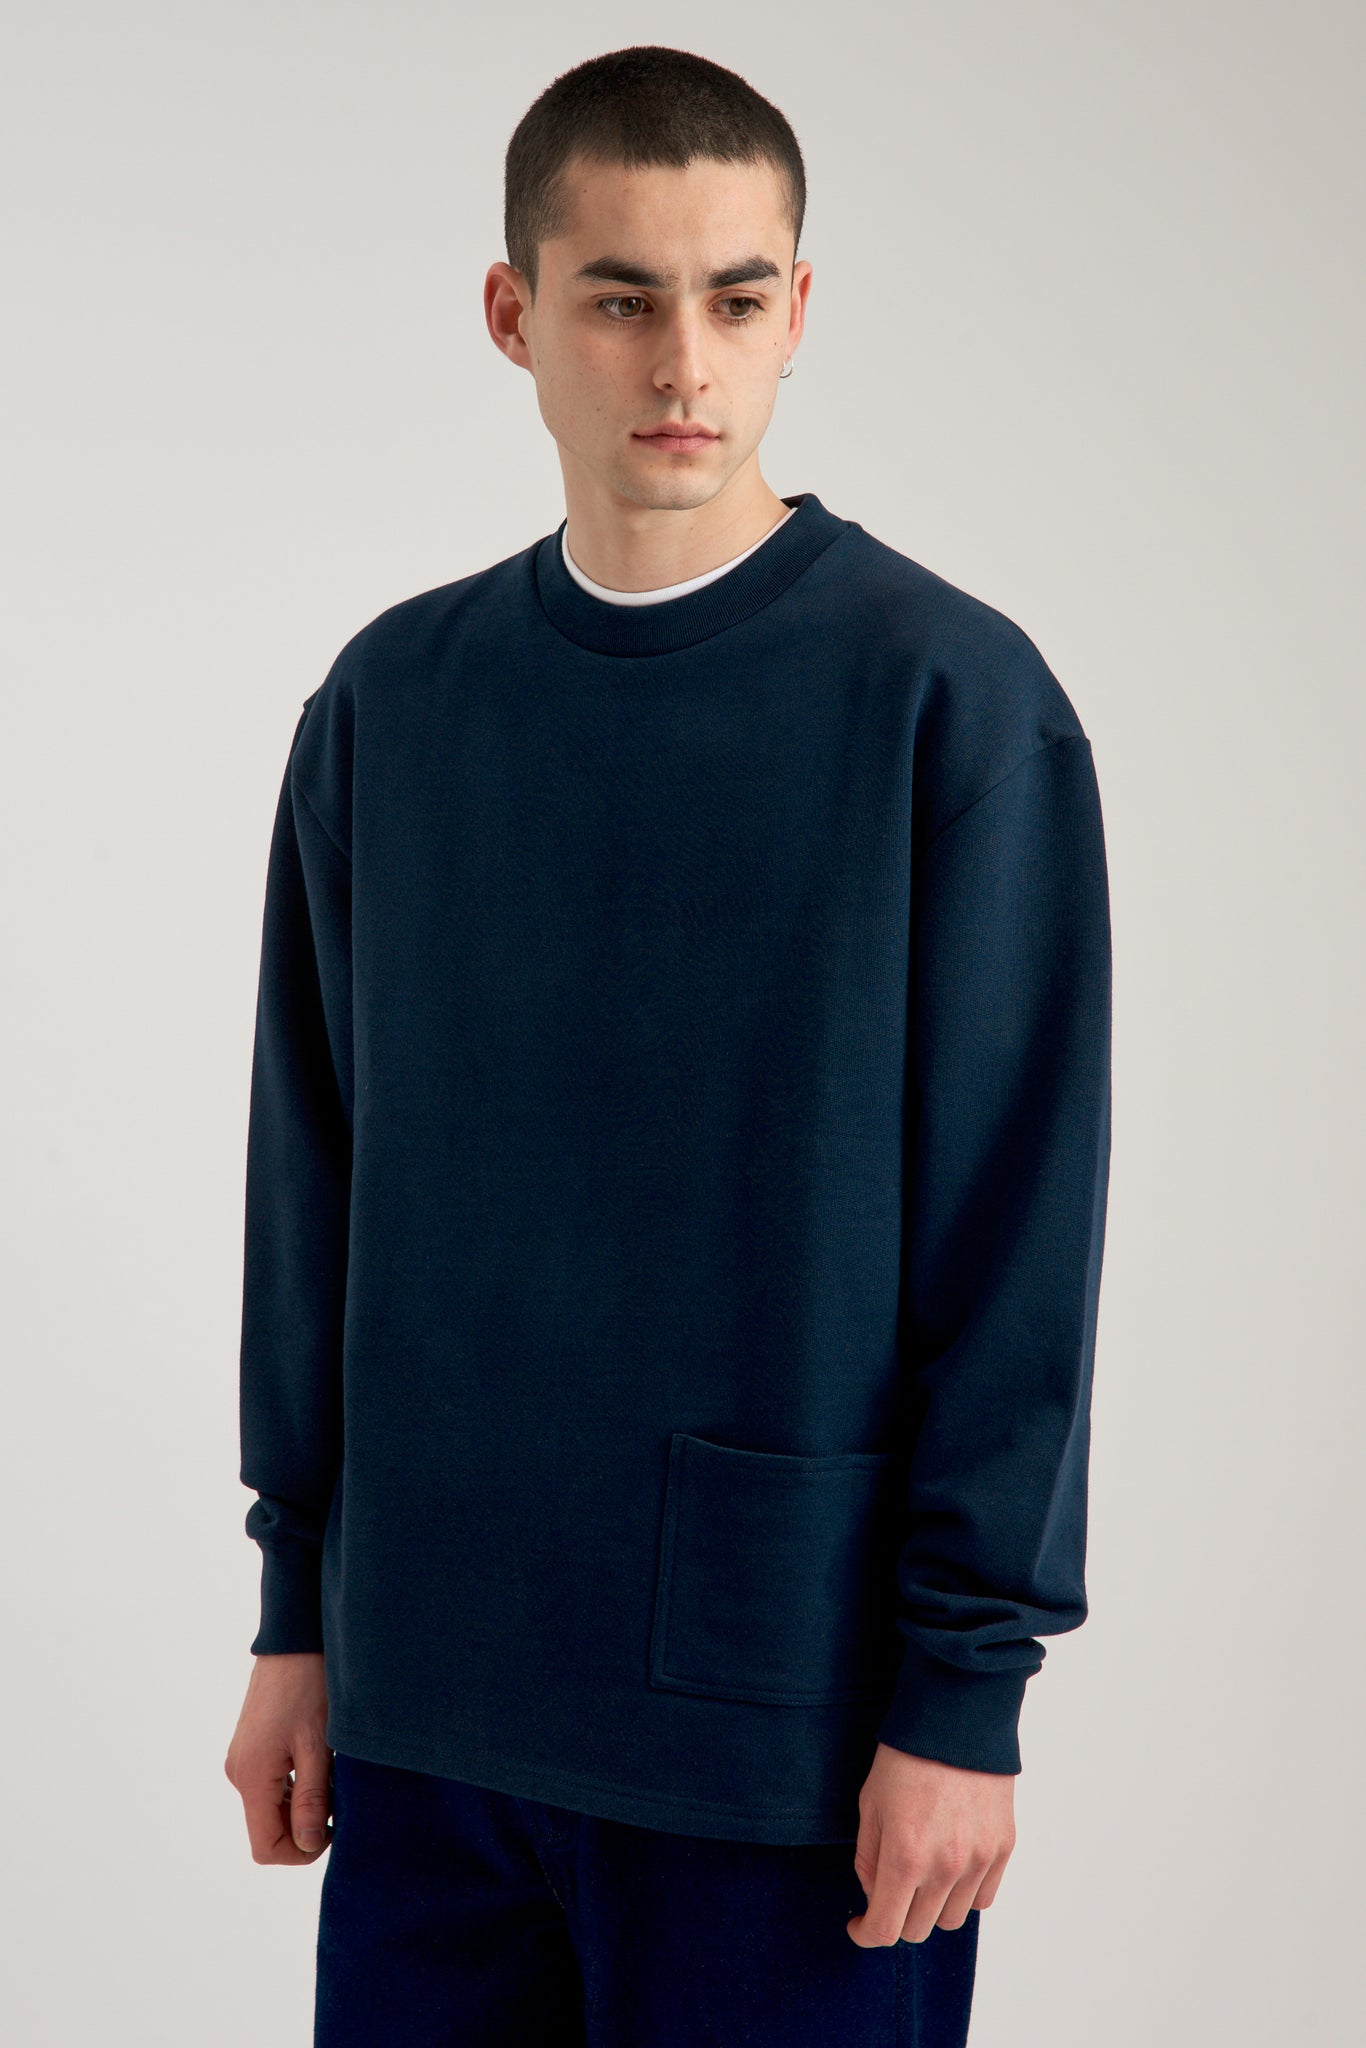 Charles Pocket Navy Sweater - Arte Antwerp